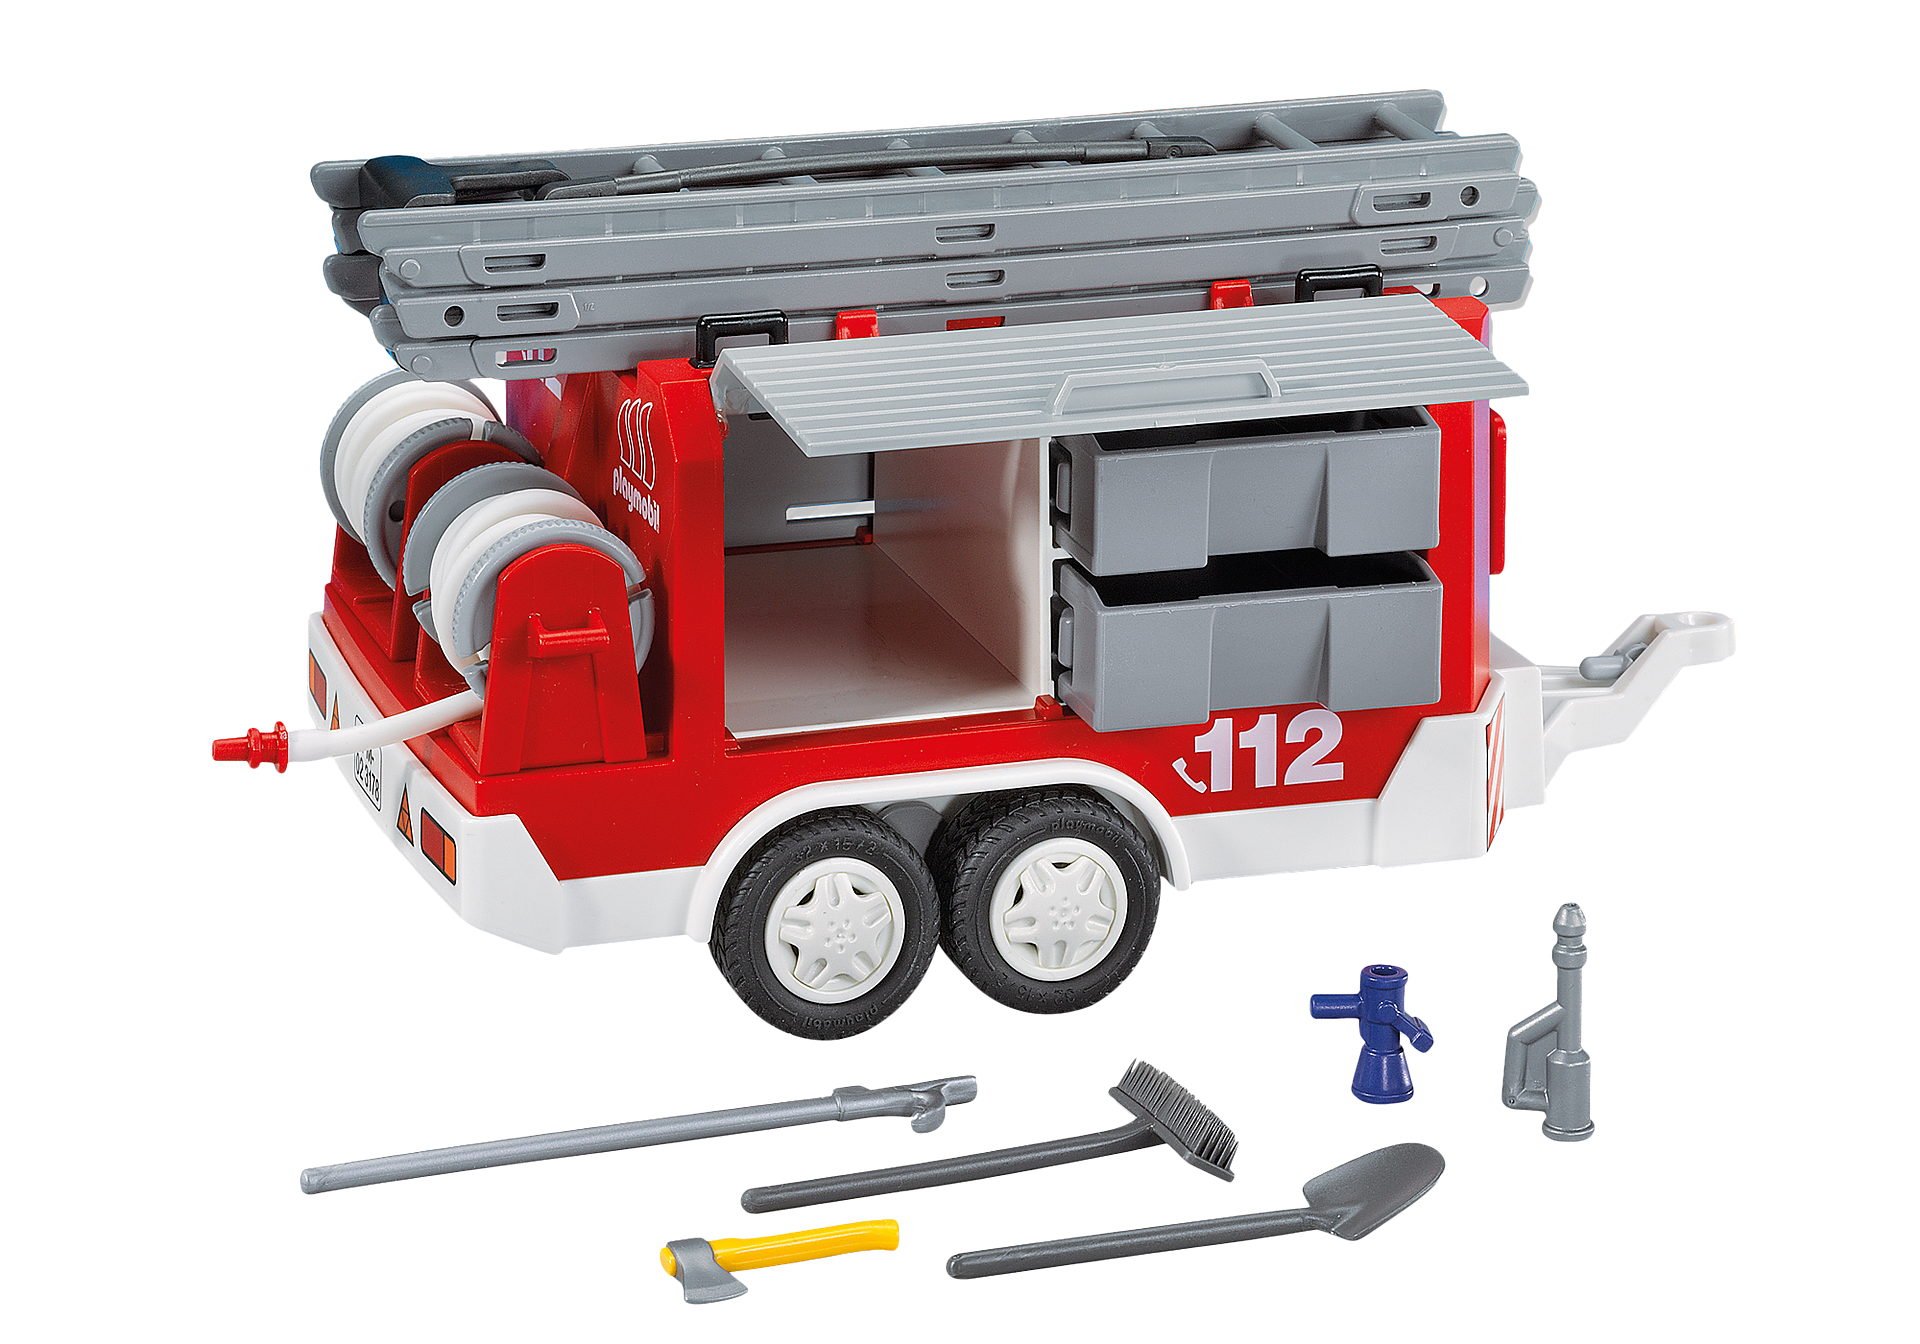 http://media.playmobil.com/i/playmobil/7485_product_detail/Feuerwehr-Anhänger